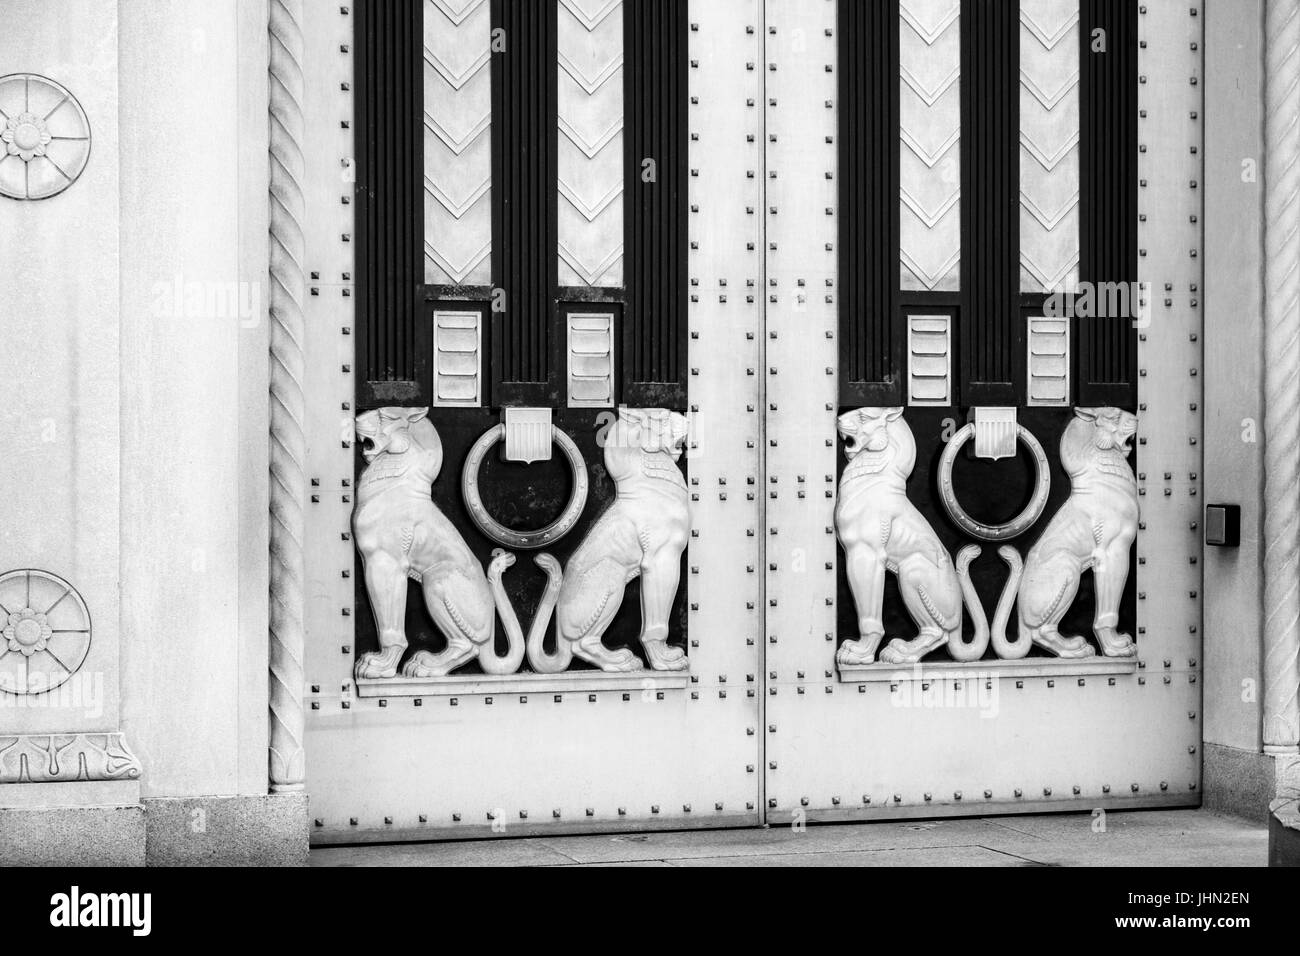 Deco style doors on the Department of Justice building - Stock Image